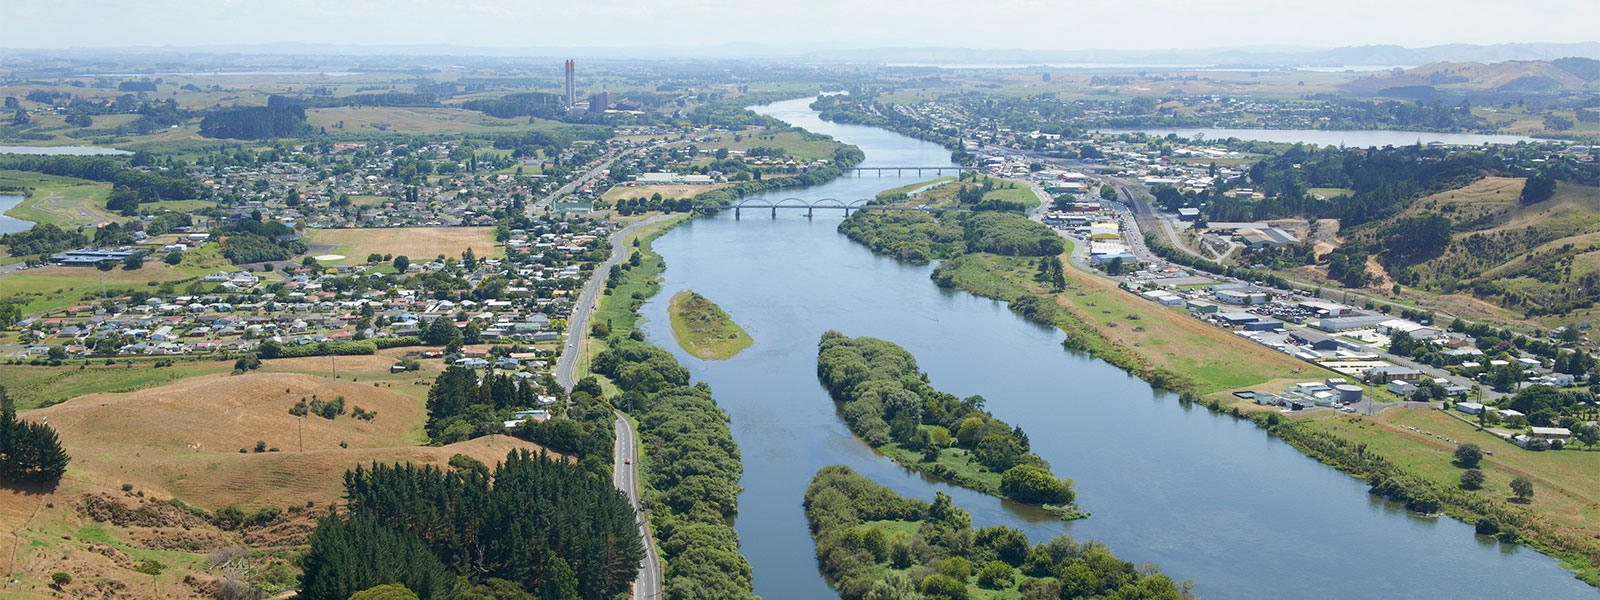 The view of Huntly from above